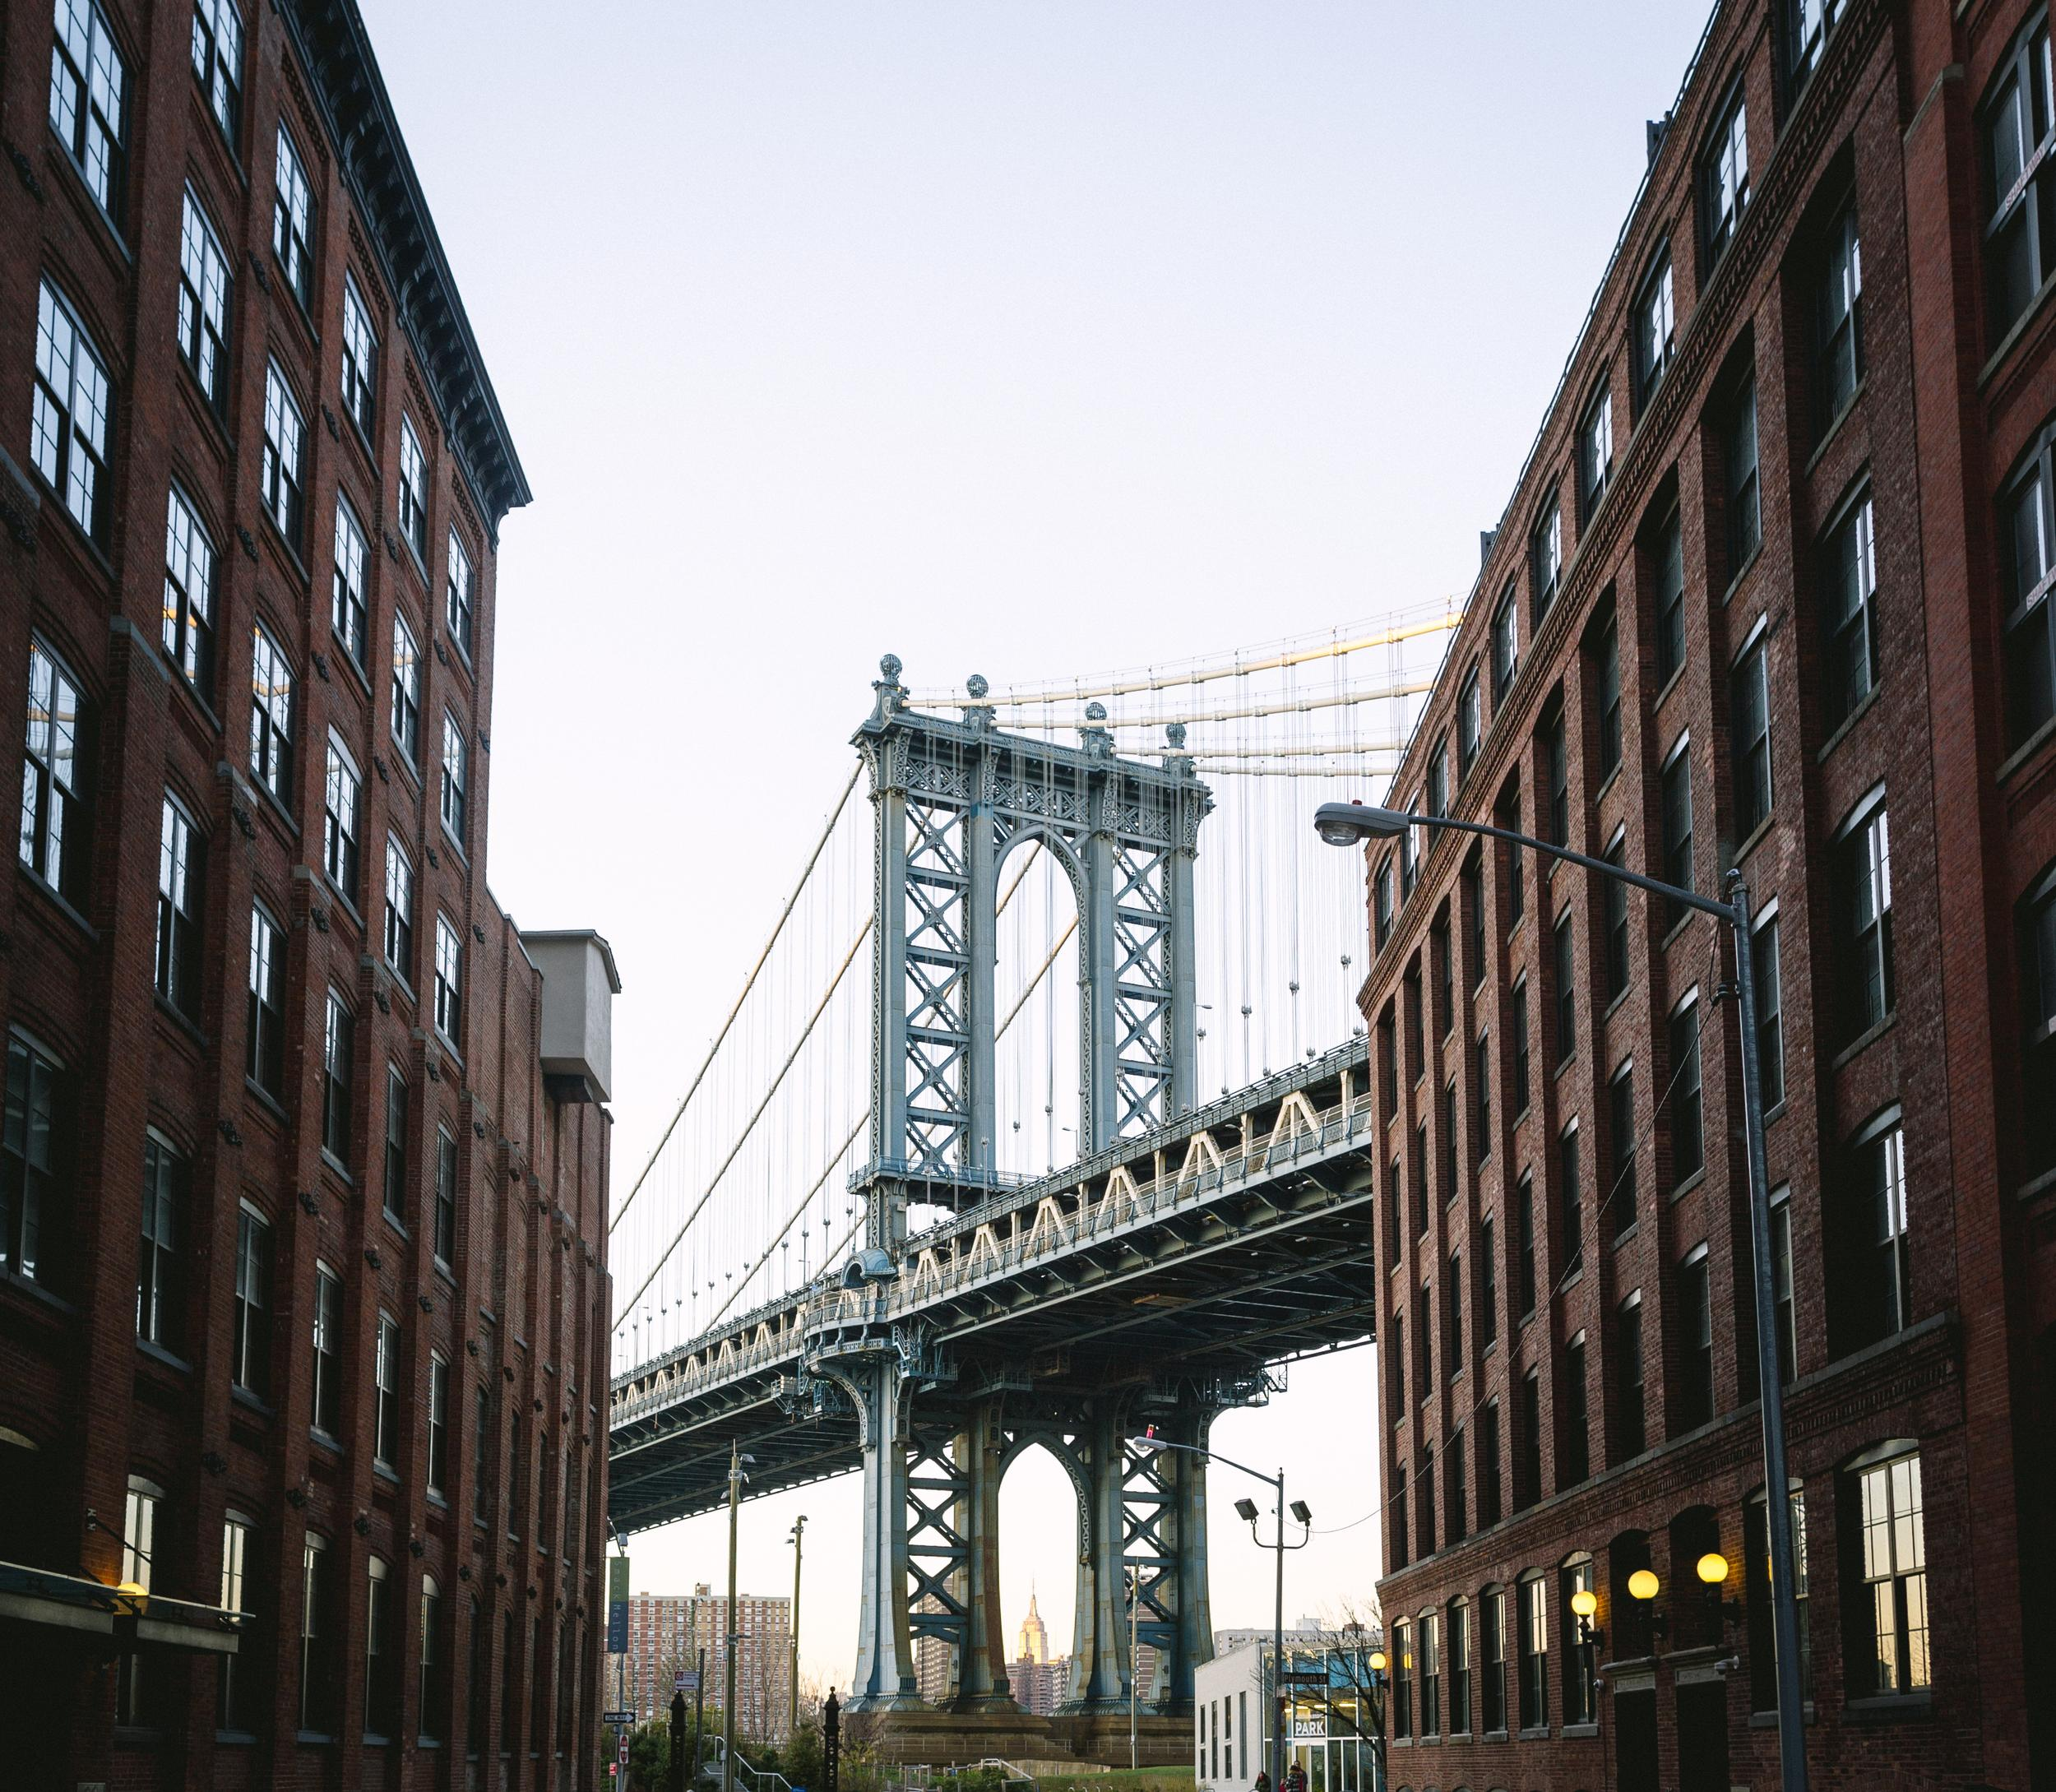 Nyc New: The 14 Best Places To Take Pictures In New York City